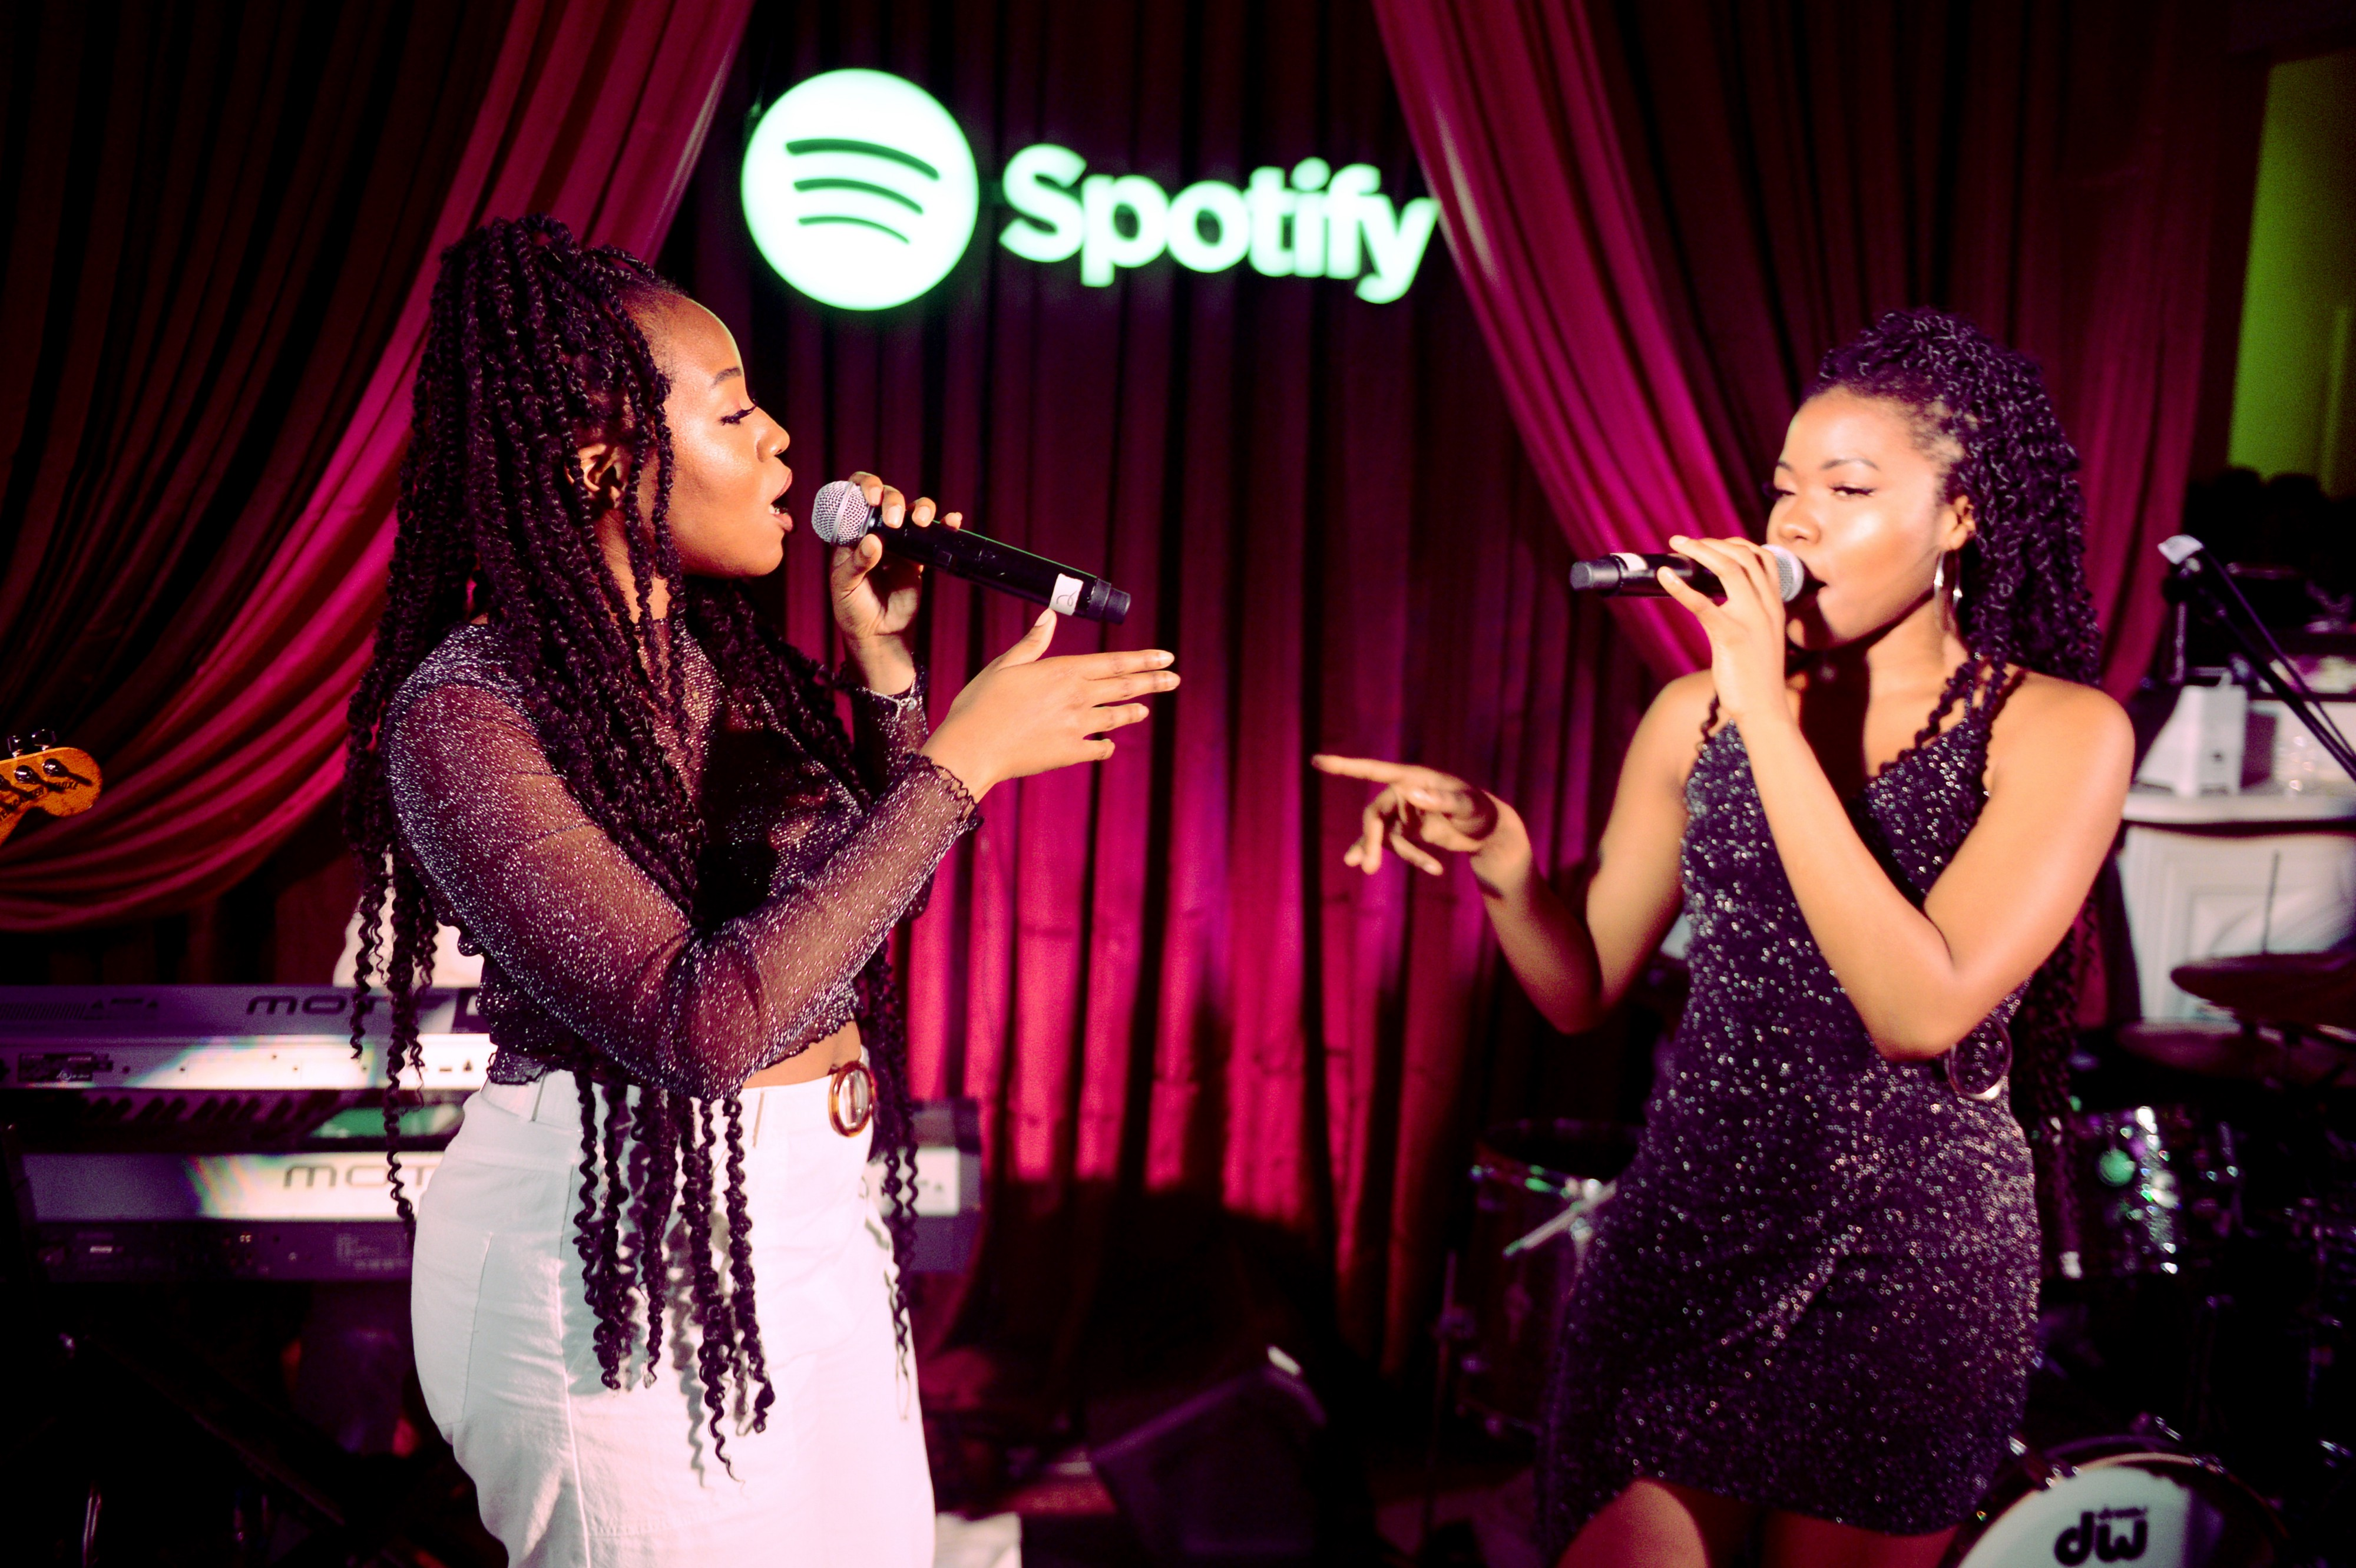 VanJess performing with mood lighting live with a Spotify logo in neon at the back. They are singing into their microphones and gesturing at each other.